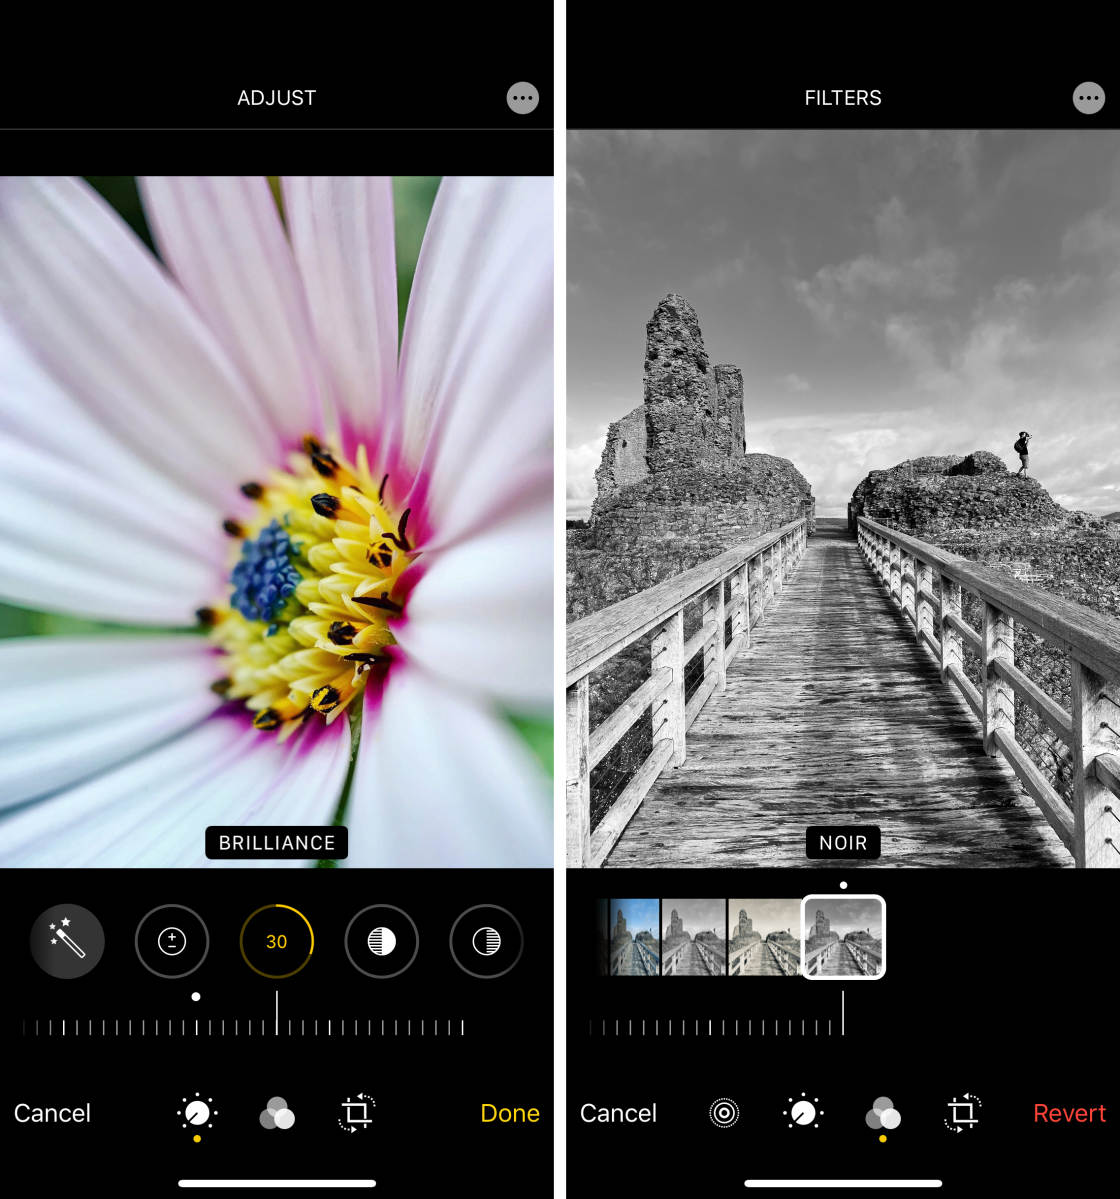 Smart Phone Camera Tricks-Capture Amazing Photos From Your Phone